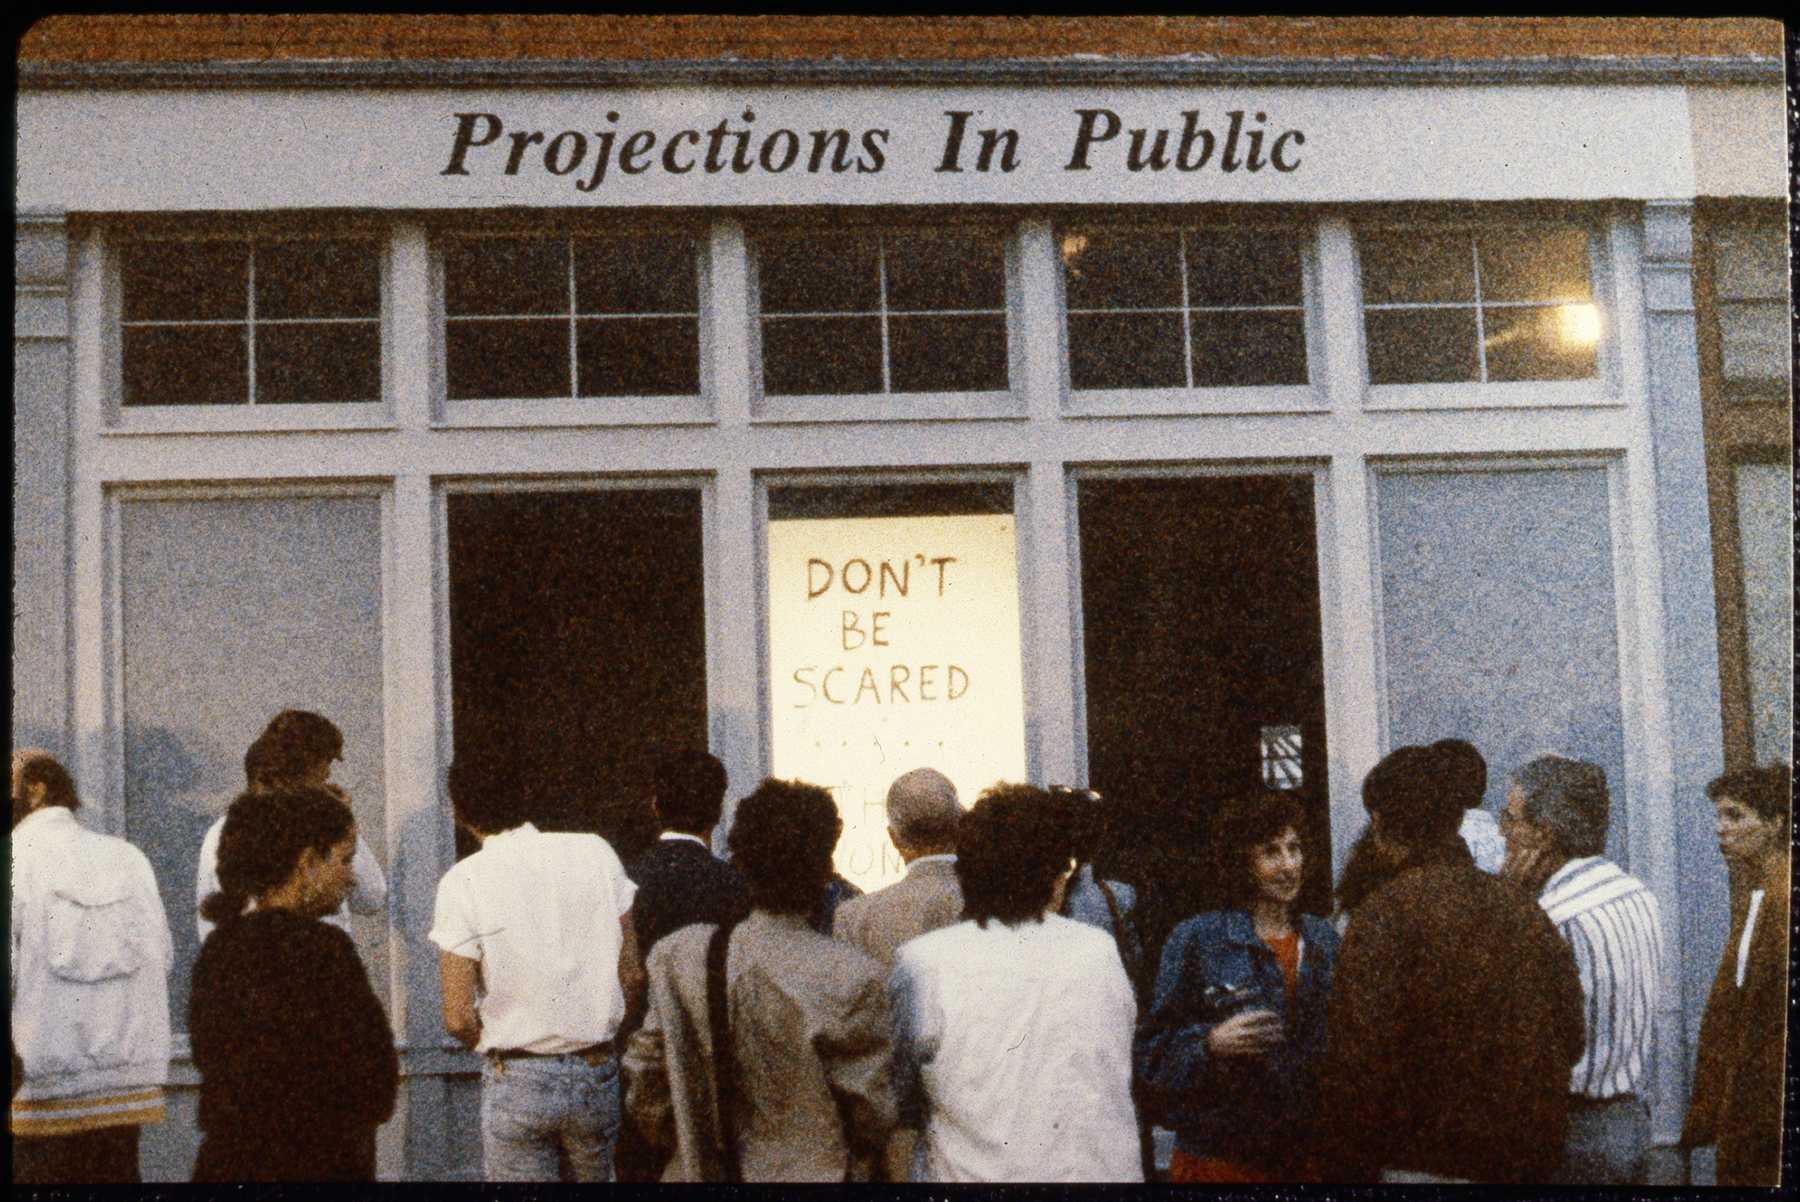 Projections in Public: Cleveland, curated by Karen Atkinson, image by Beverly Naidus